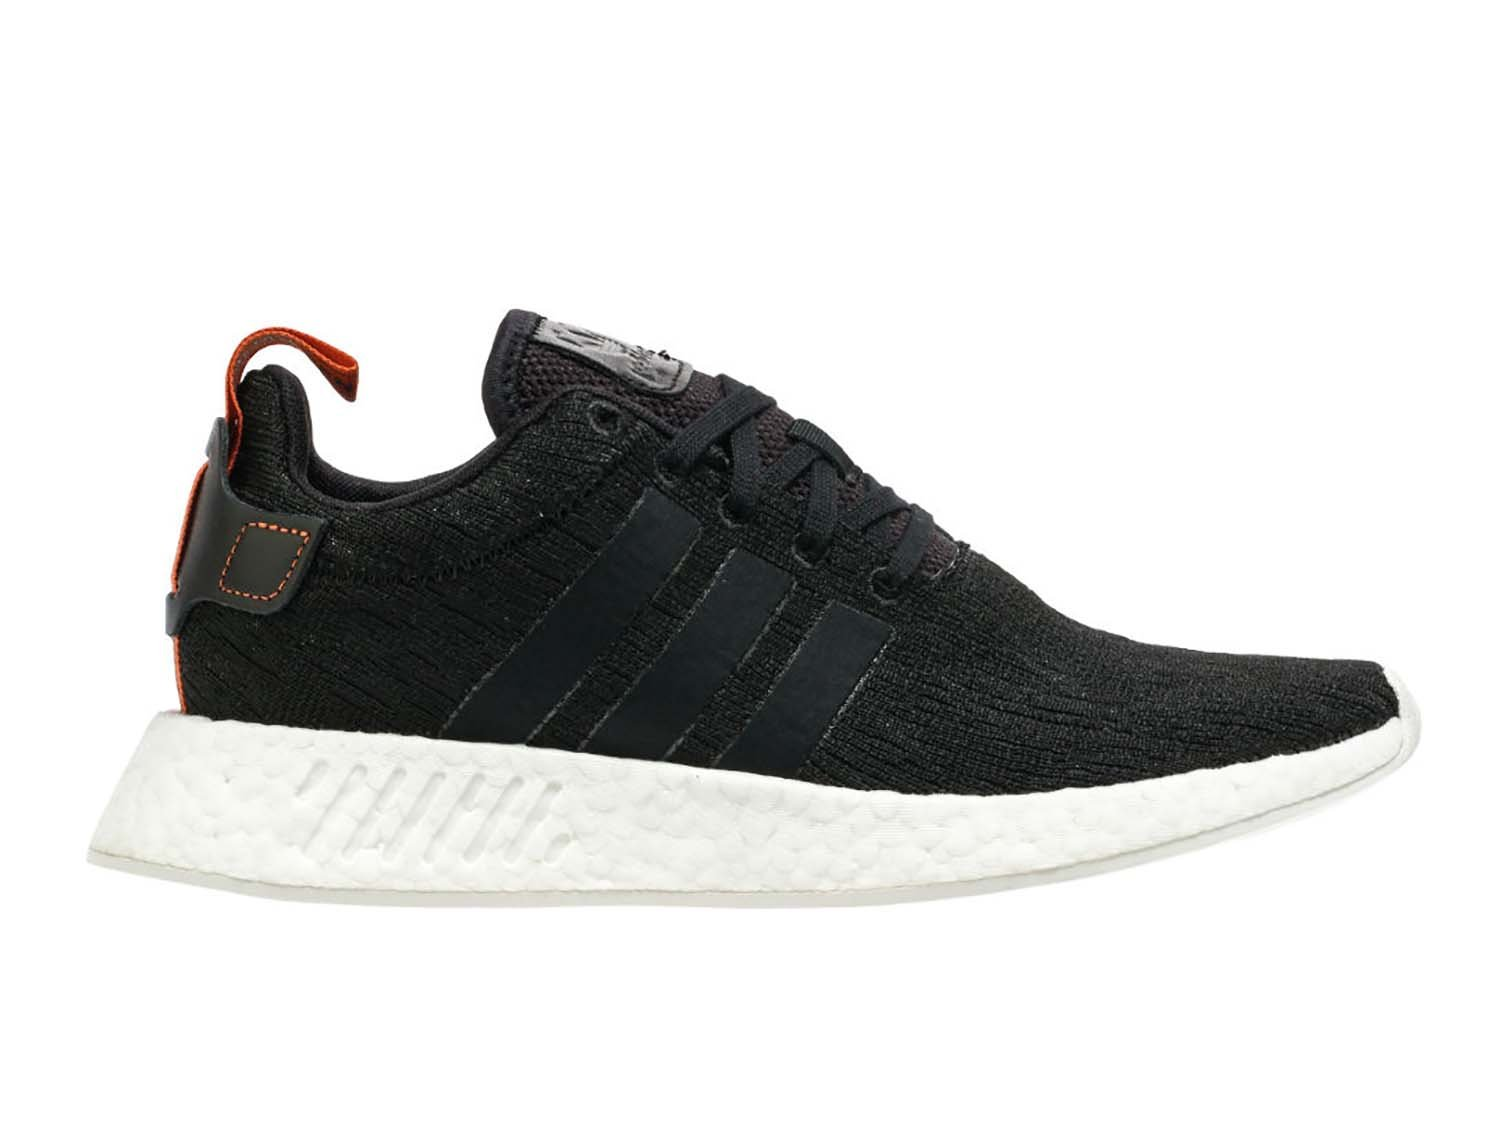 adidas Originals Men's NMD_R2 Sneaker, Black/Black/Future Harvest, 12 M US